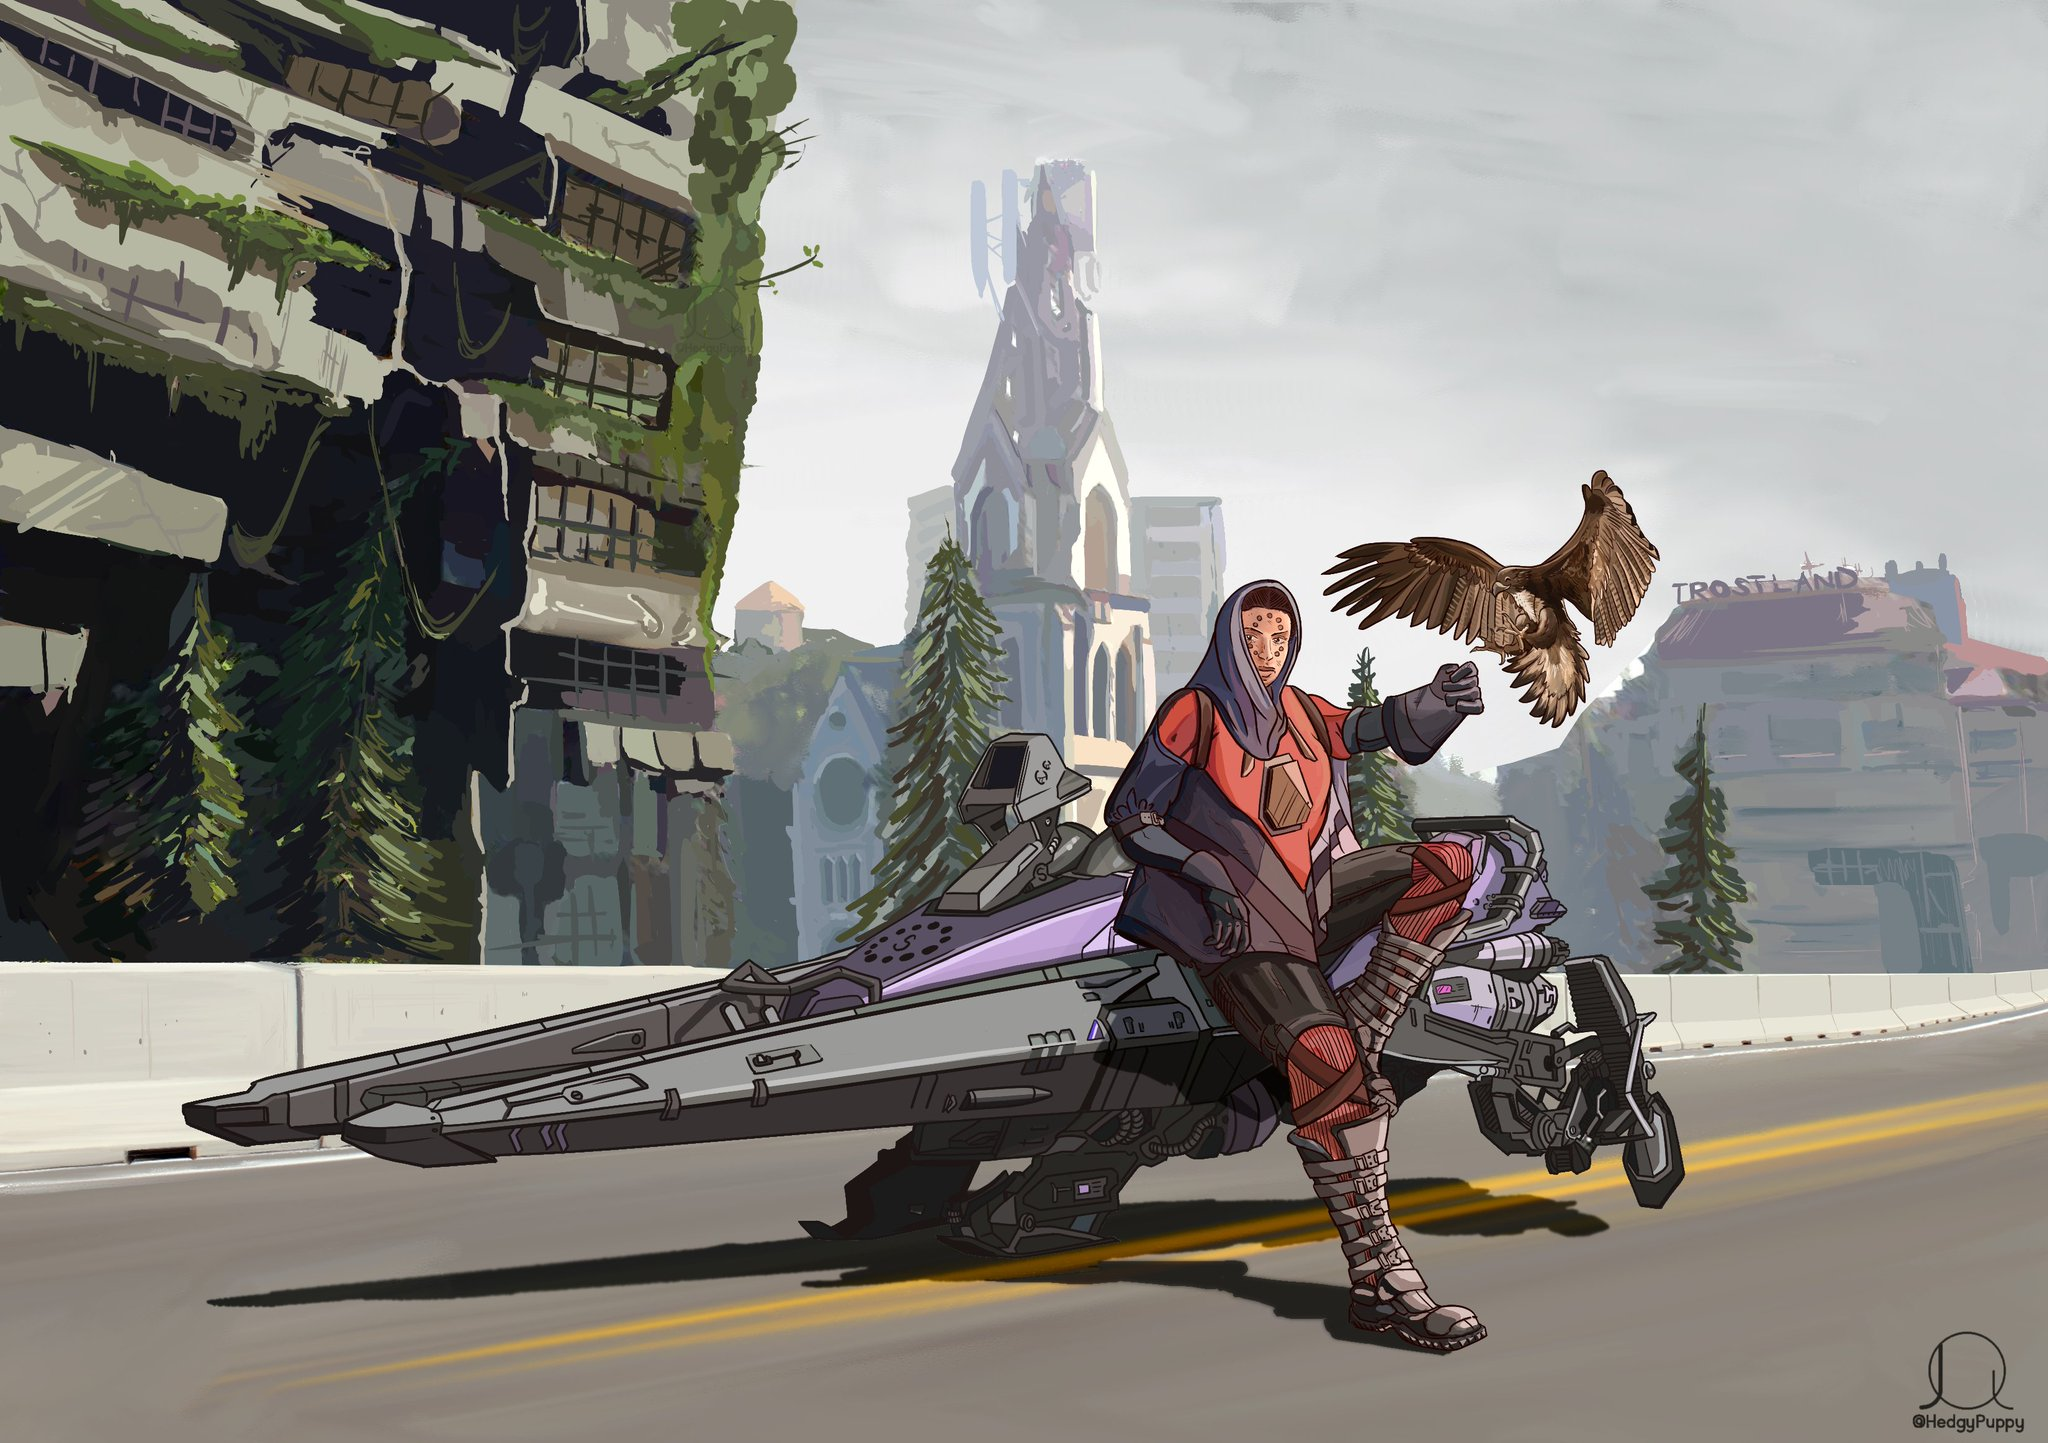 Need a ride, guardian?